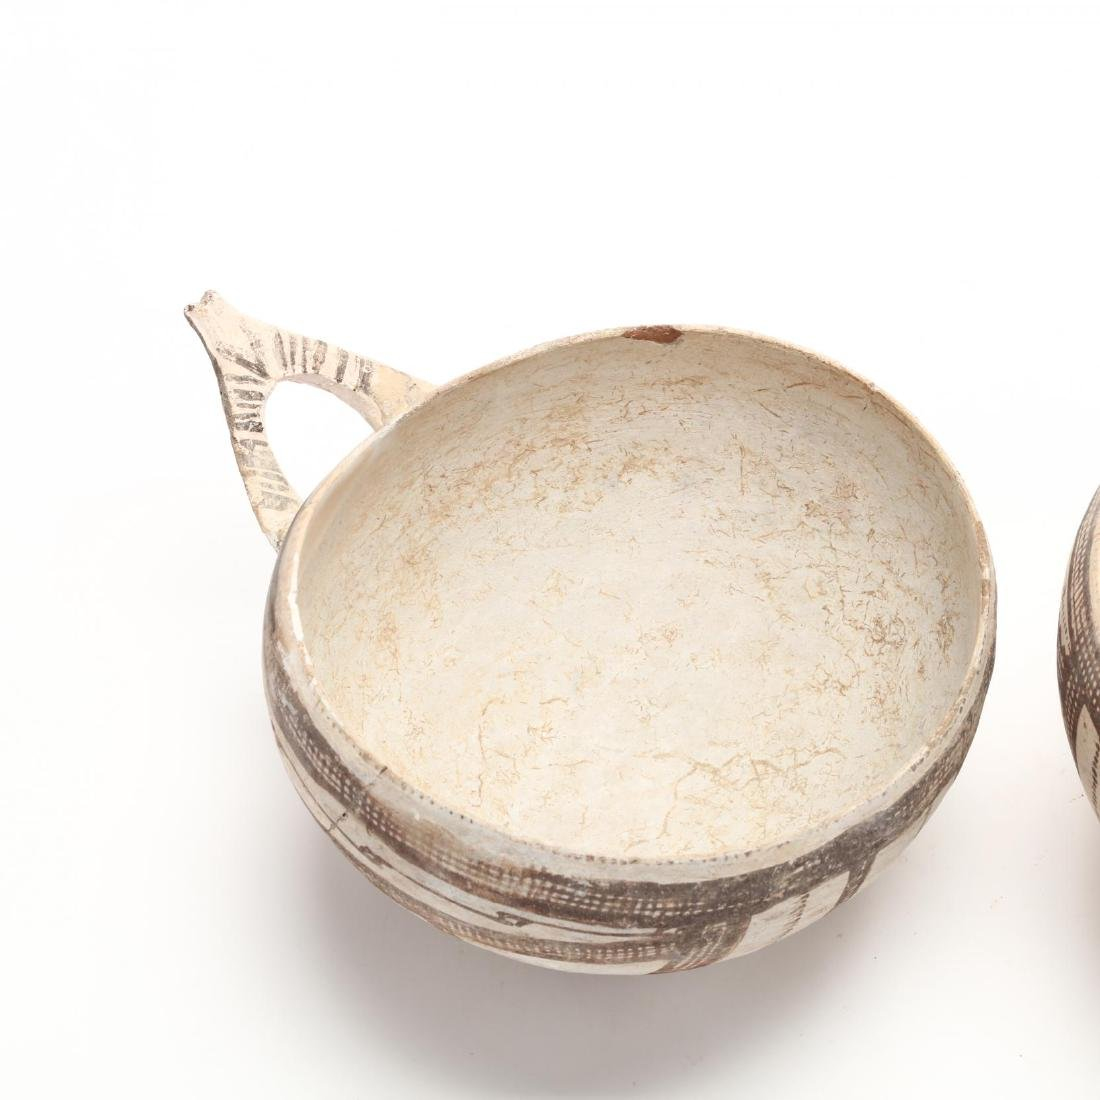 Pair of Cypriot Late Bronze Age White Slip Bowls - 5